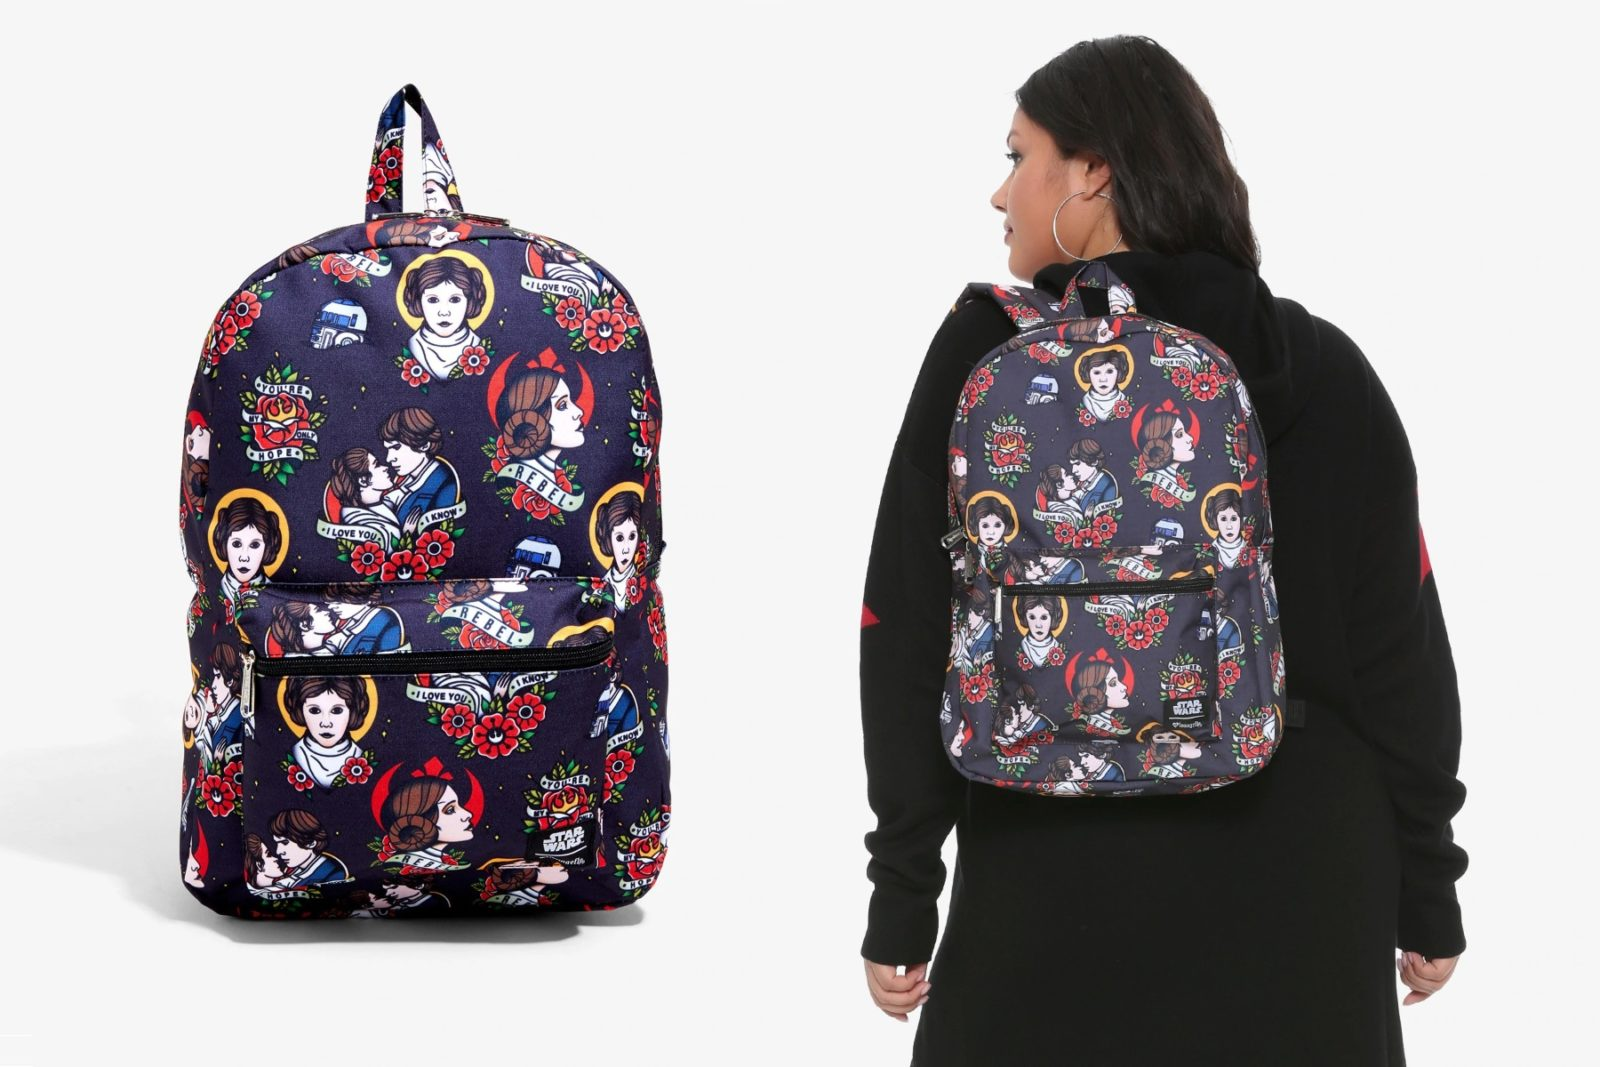 Loungefly Leia & Han Backpack on Sale